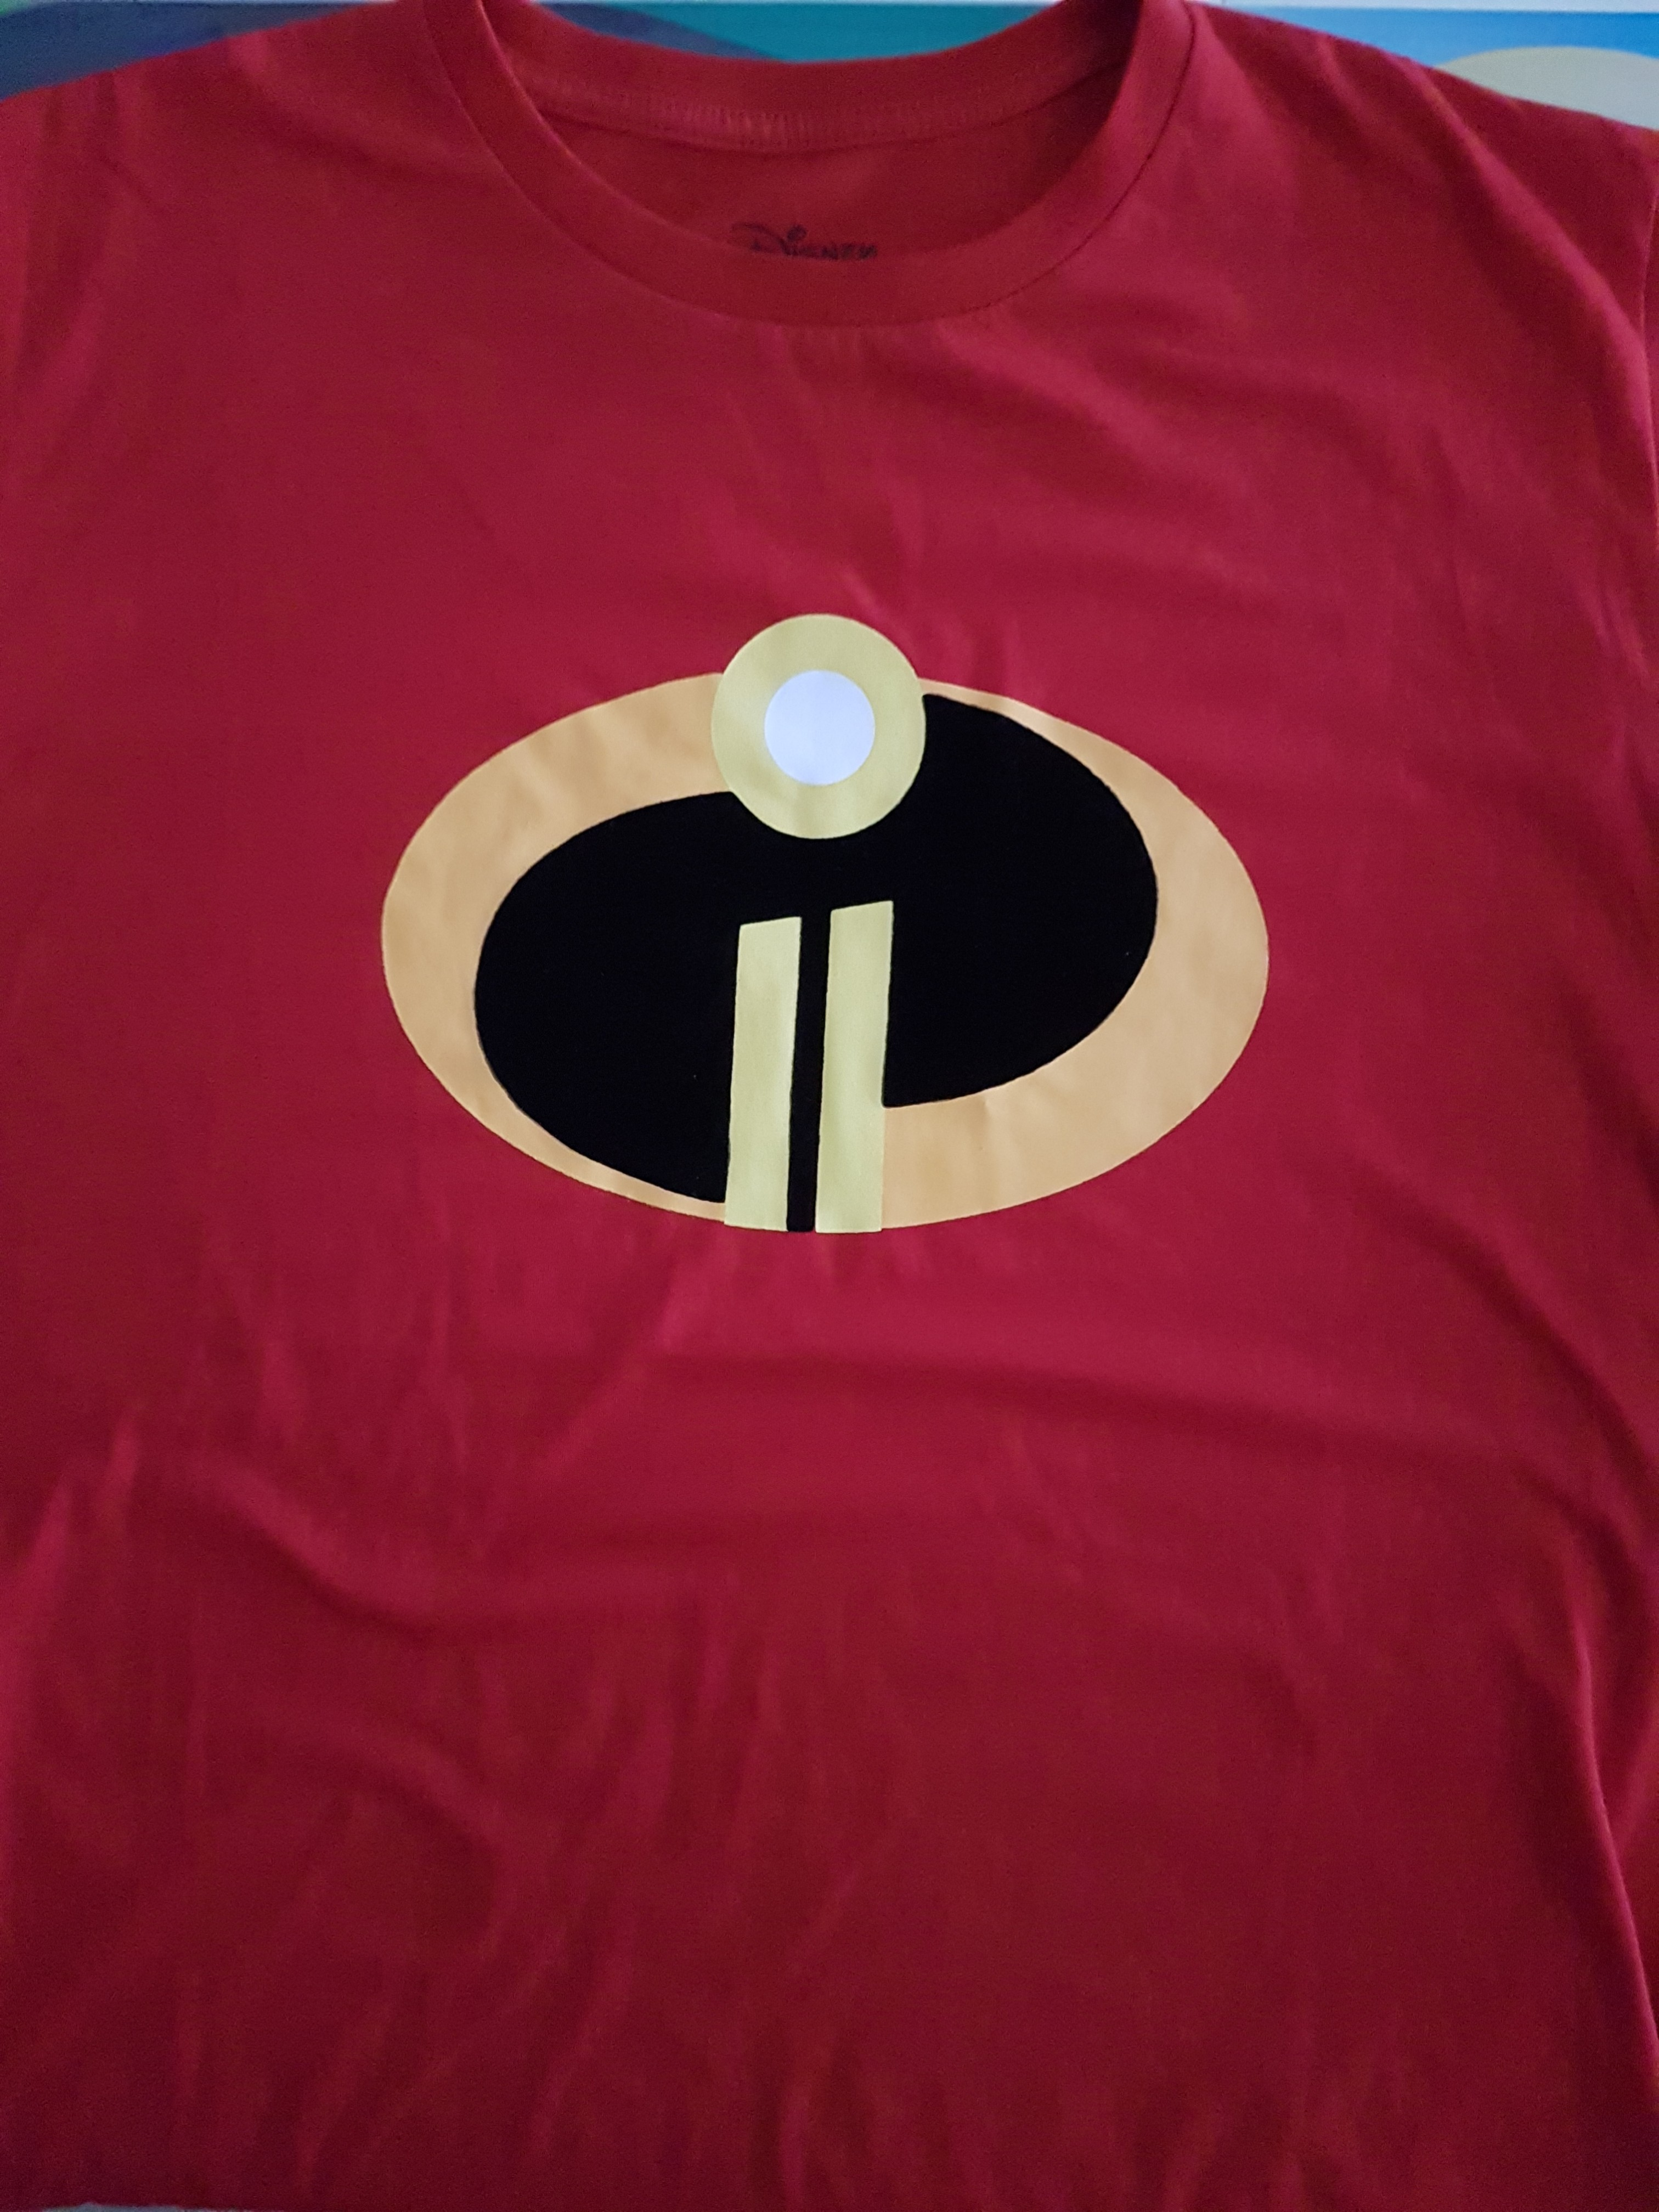 7eedc9cb Incredibles T shirt M size, Men's Fashion, Clothes, Tops on Carousell